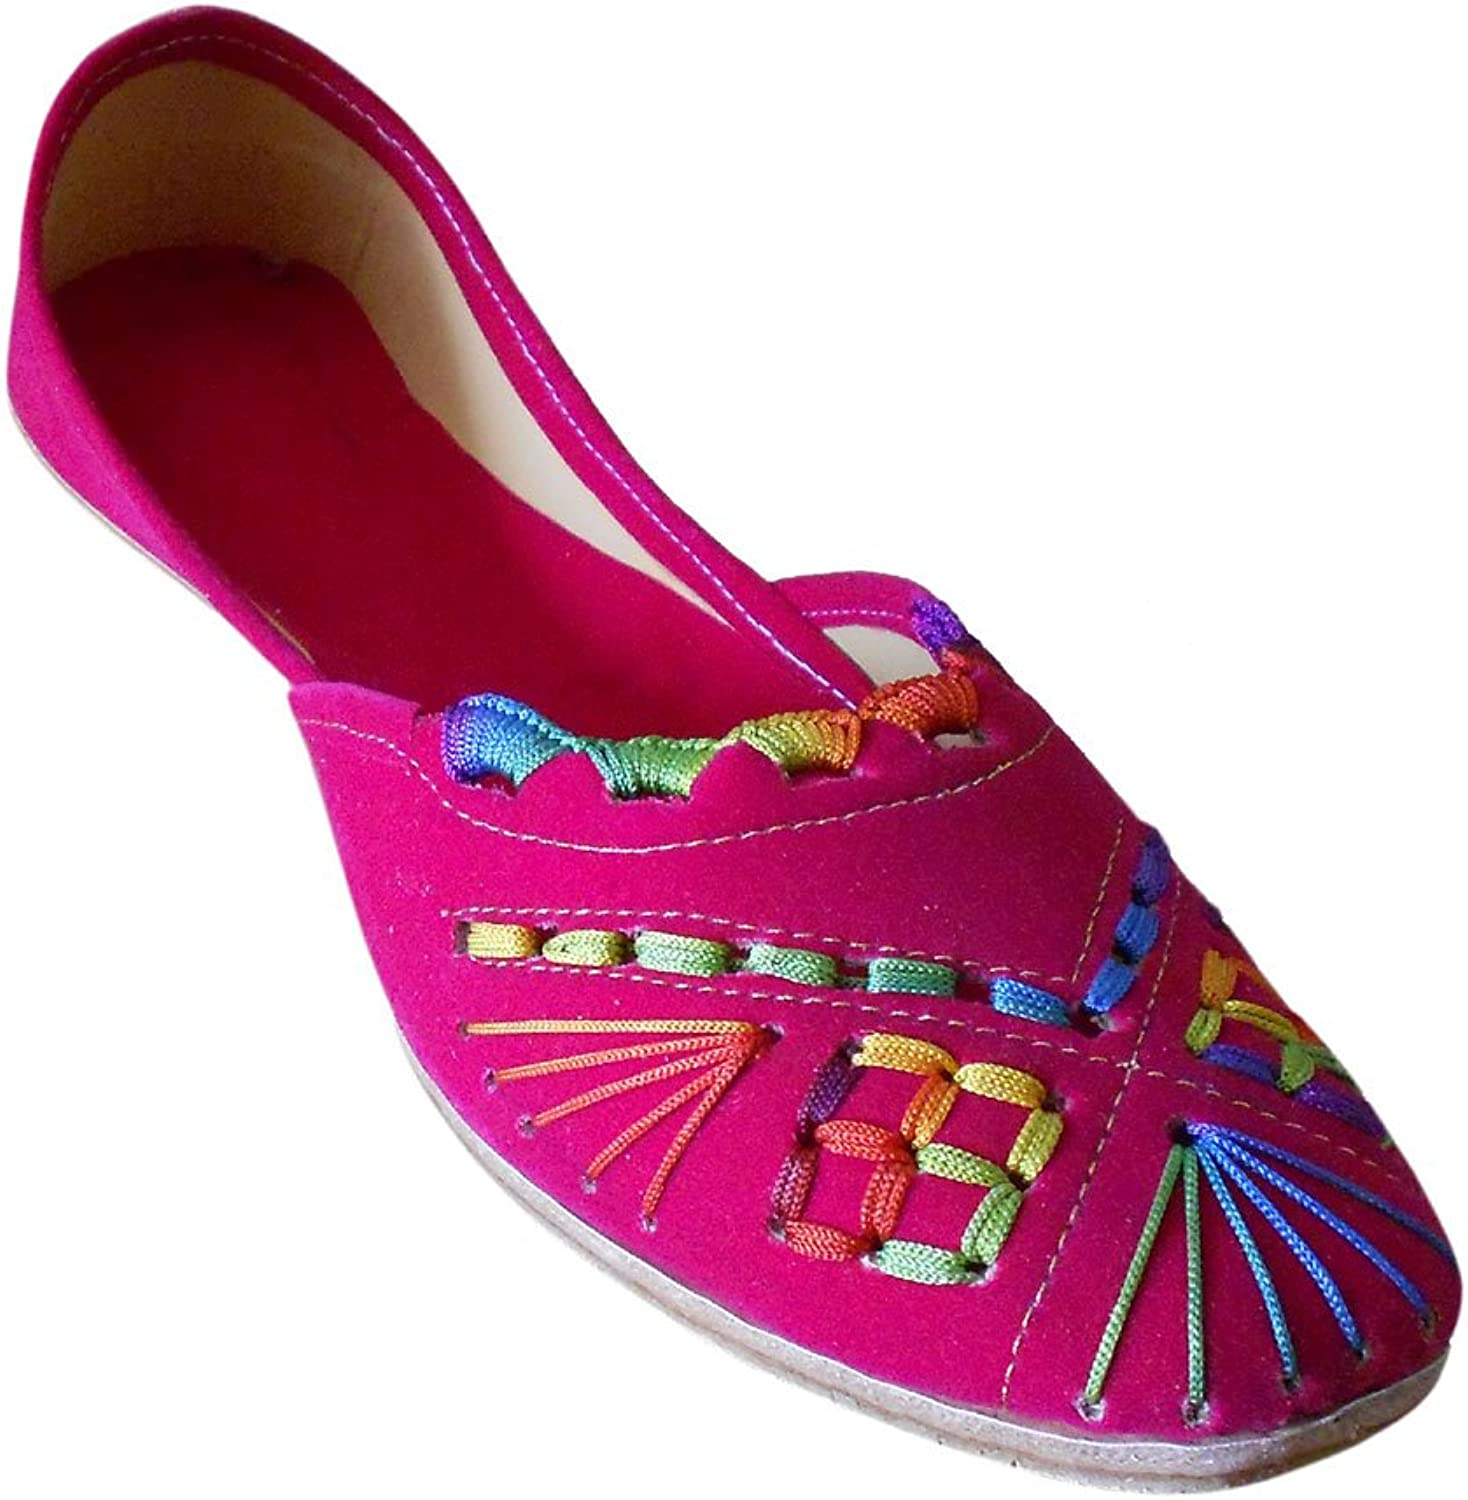 Kalra Creations Mojari Women's Traditional Indian Velvet with Embroidery Ethnic shoes